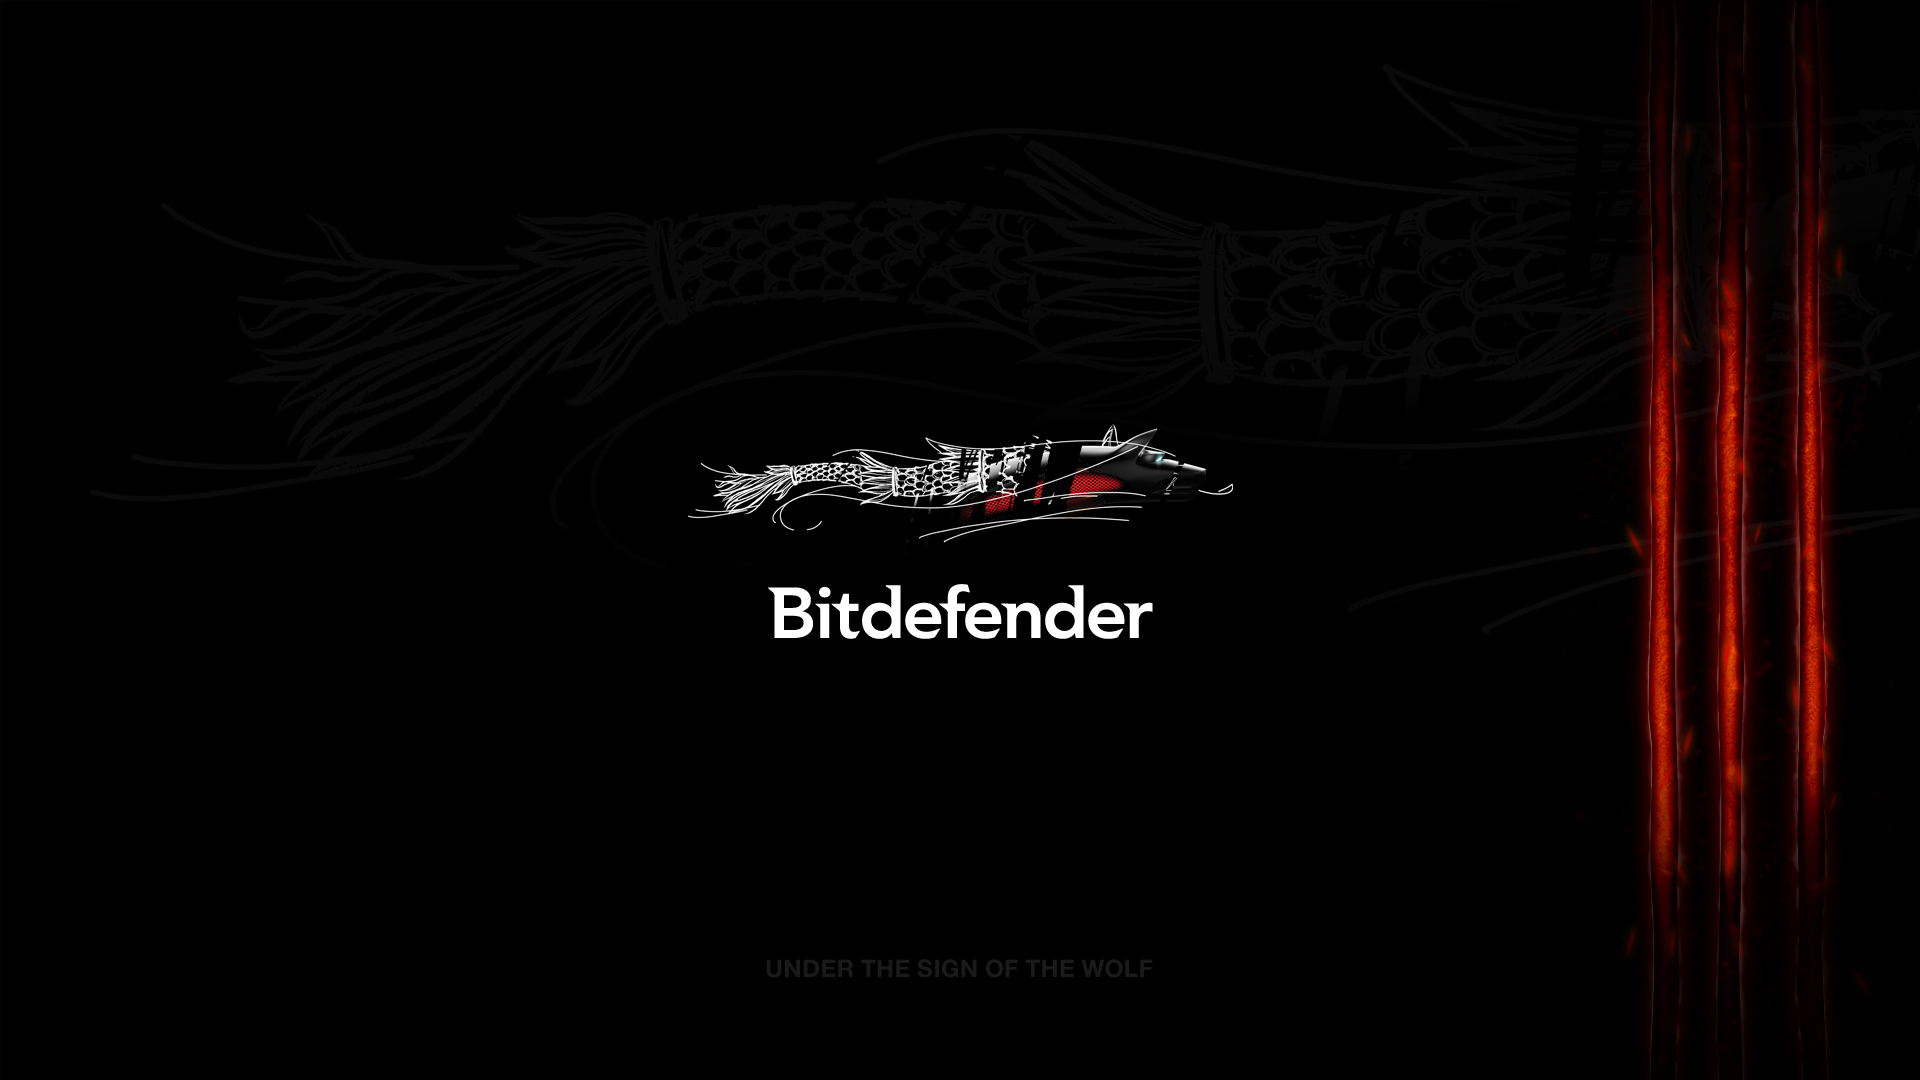 Bitdefender black wallpaper